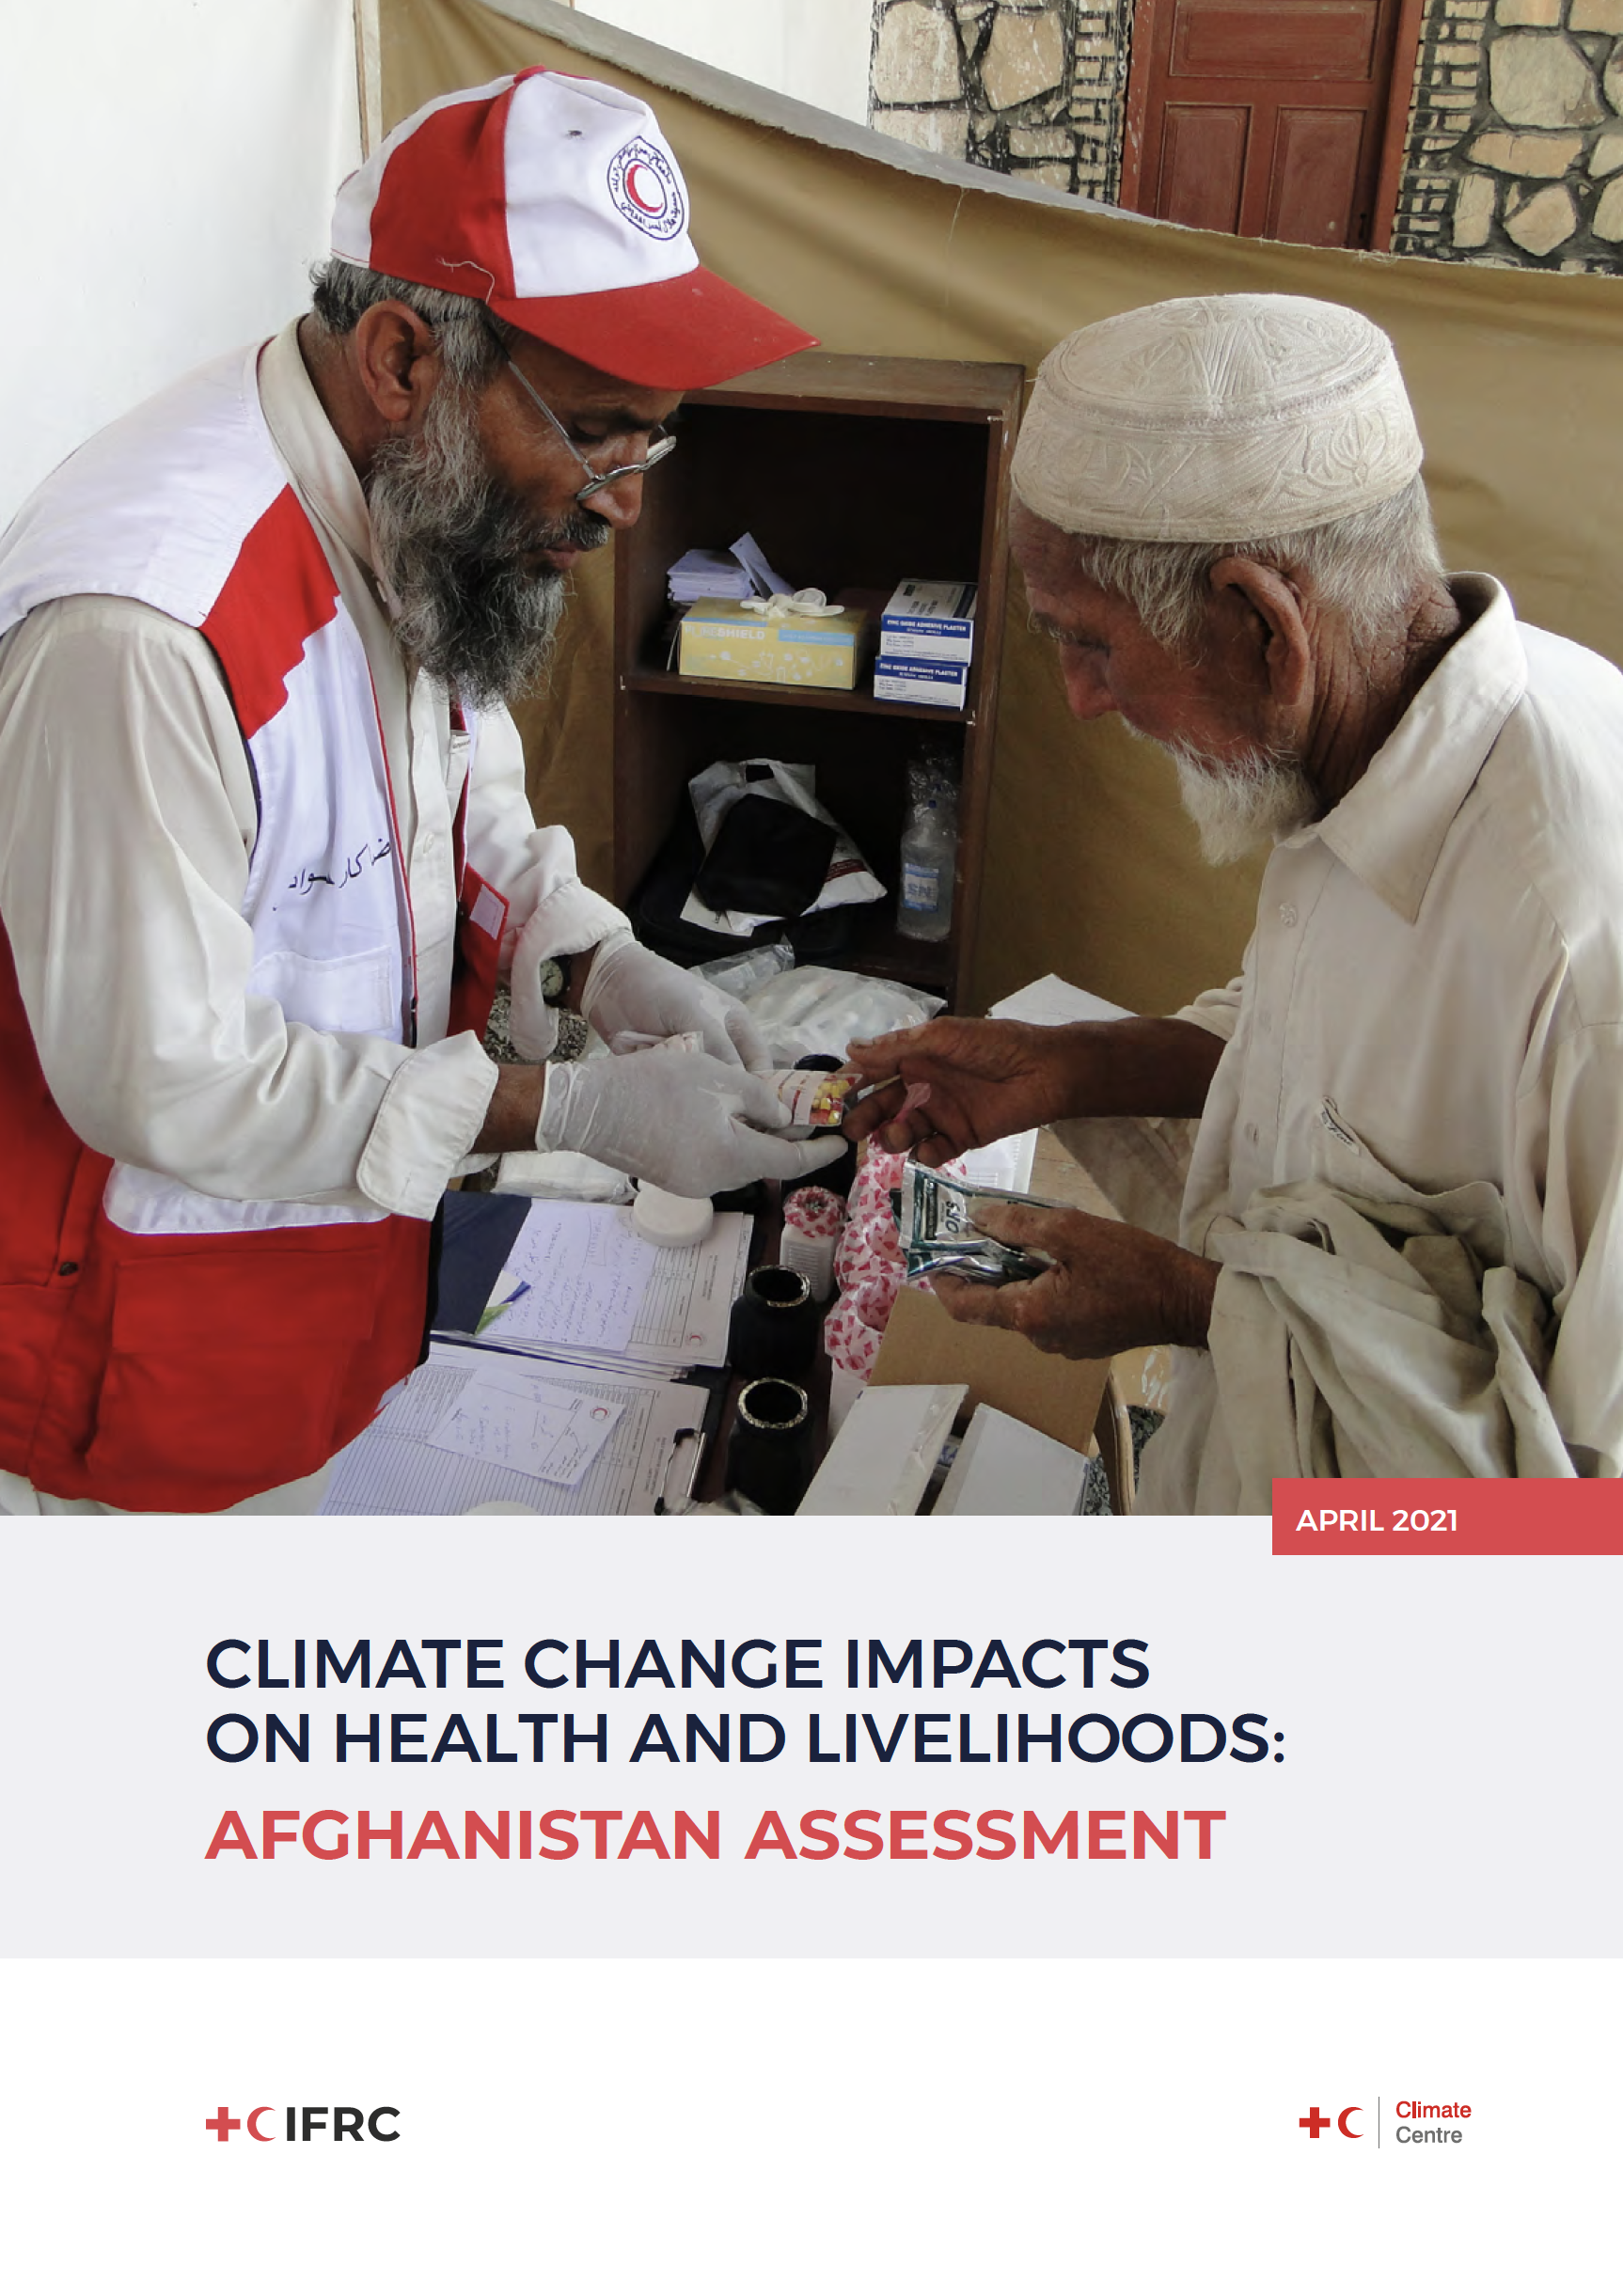 Climate Change Impacts on Health and Livelihoods: Afghanistan Assessment